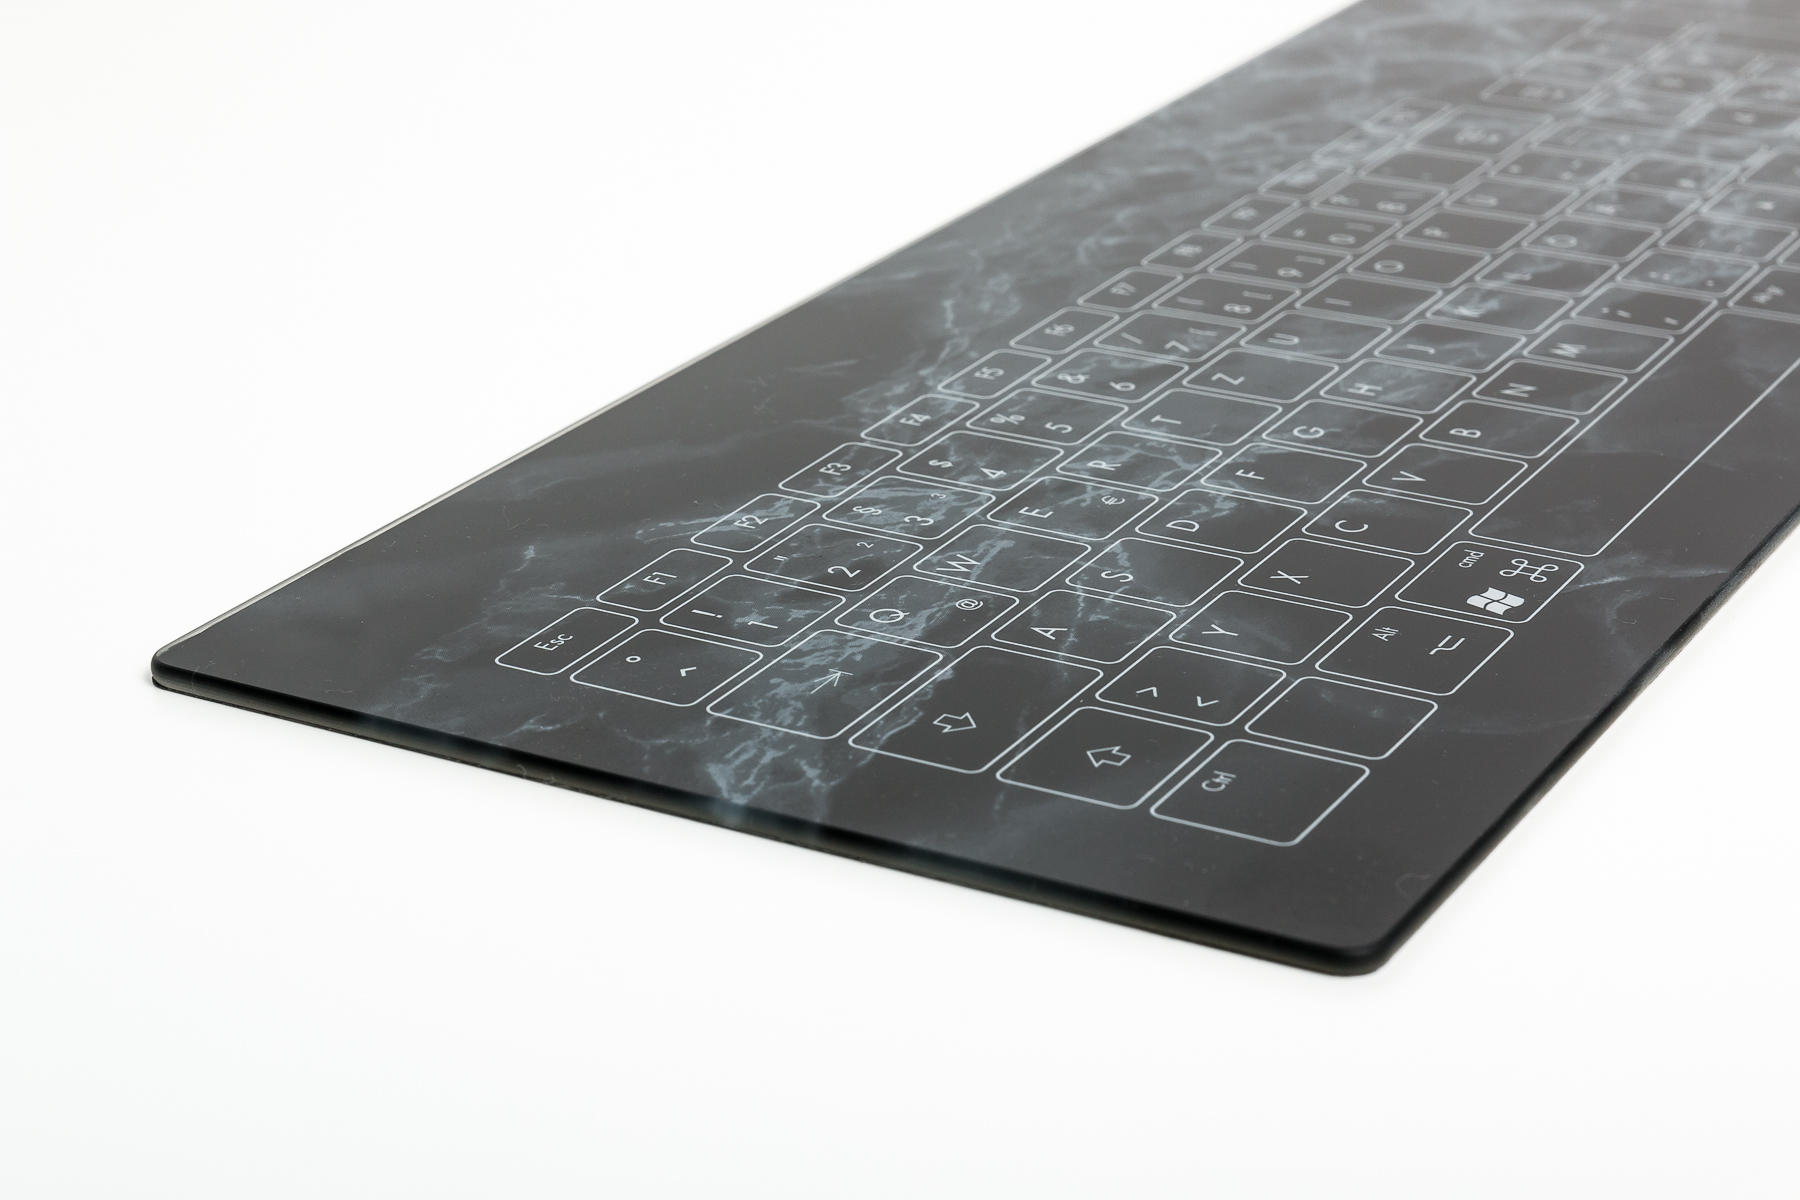 design-glass-keyboard-black-individual-print